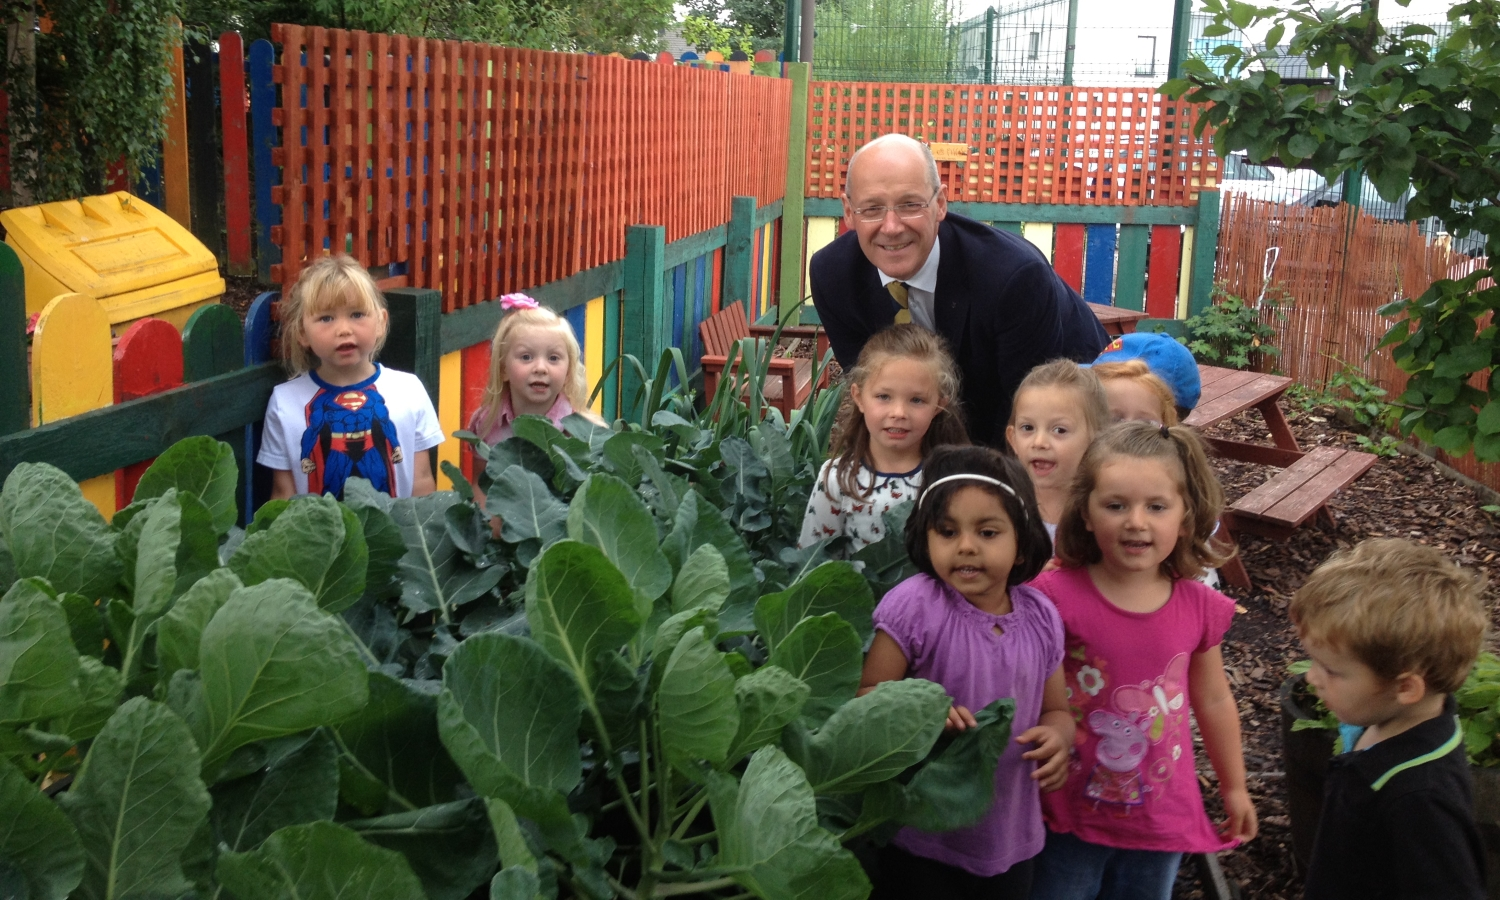 John Swinney at North Muirton Nursery